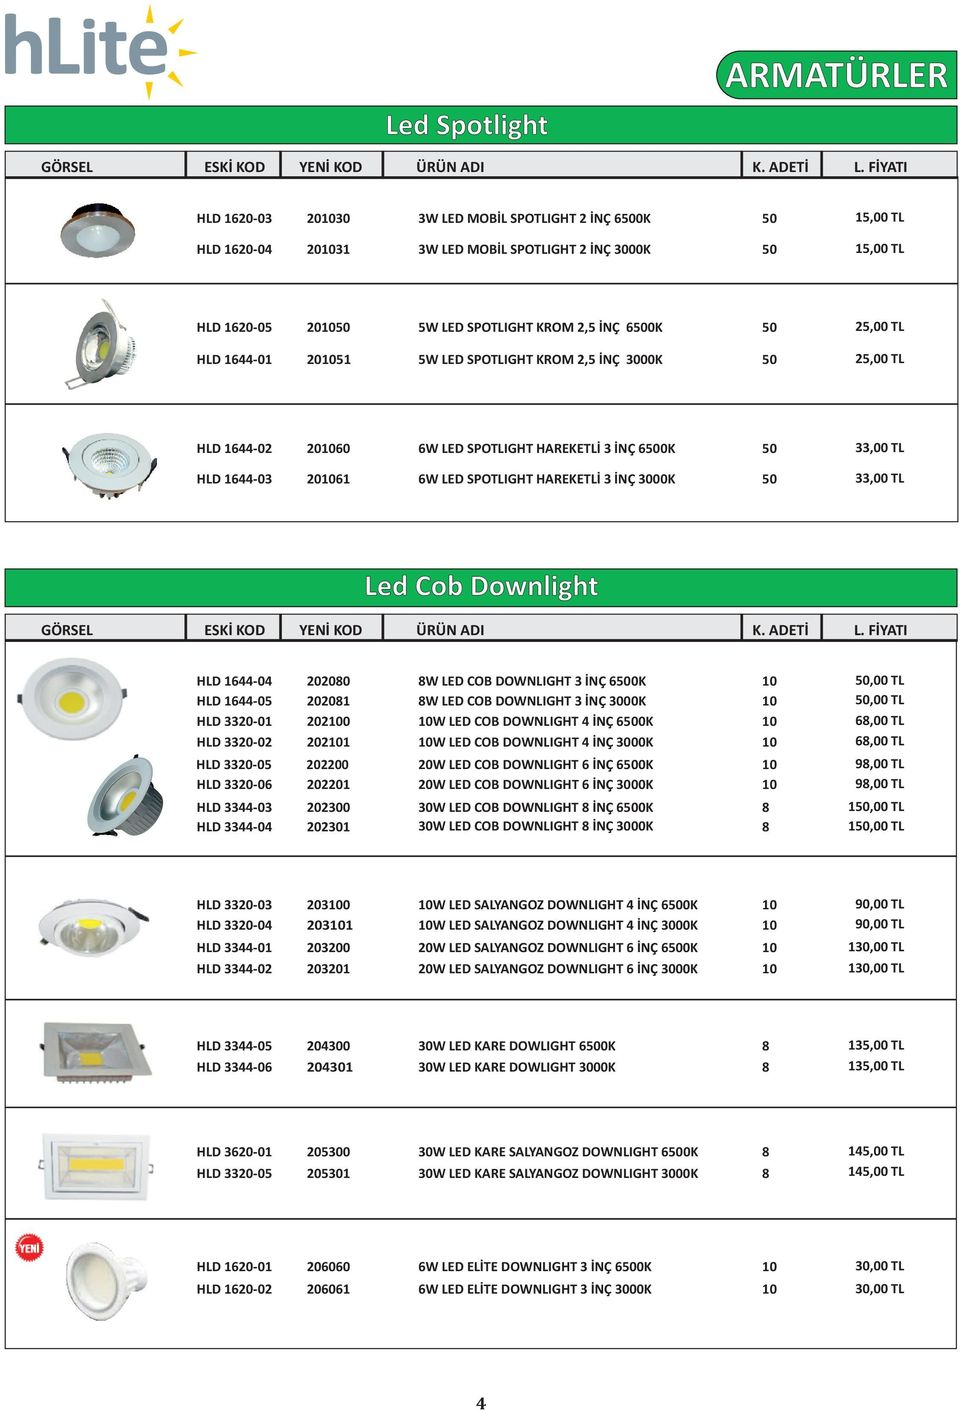 HLD 330-0 HLD 330-0 HLD 330-05 HLD 330-0 HLD 33-03 HLD 33-0 0080 008 00 0 000 00 0300 030 8W LED COB DOWNLIGHT 3 İNÇ 500K 8W LED COB DOWNLIGHT 3 İNÇ 3000K W LED COB DOWNLIGHT İNÇ 500K W LED COB